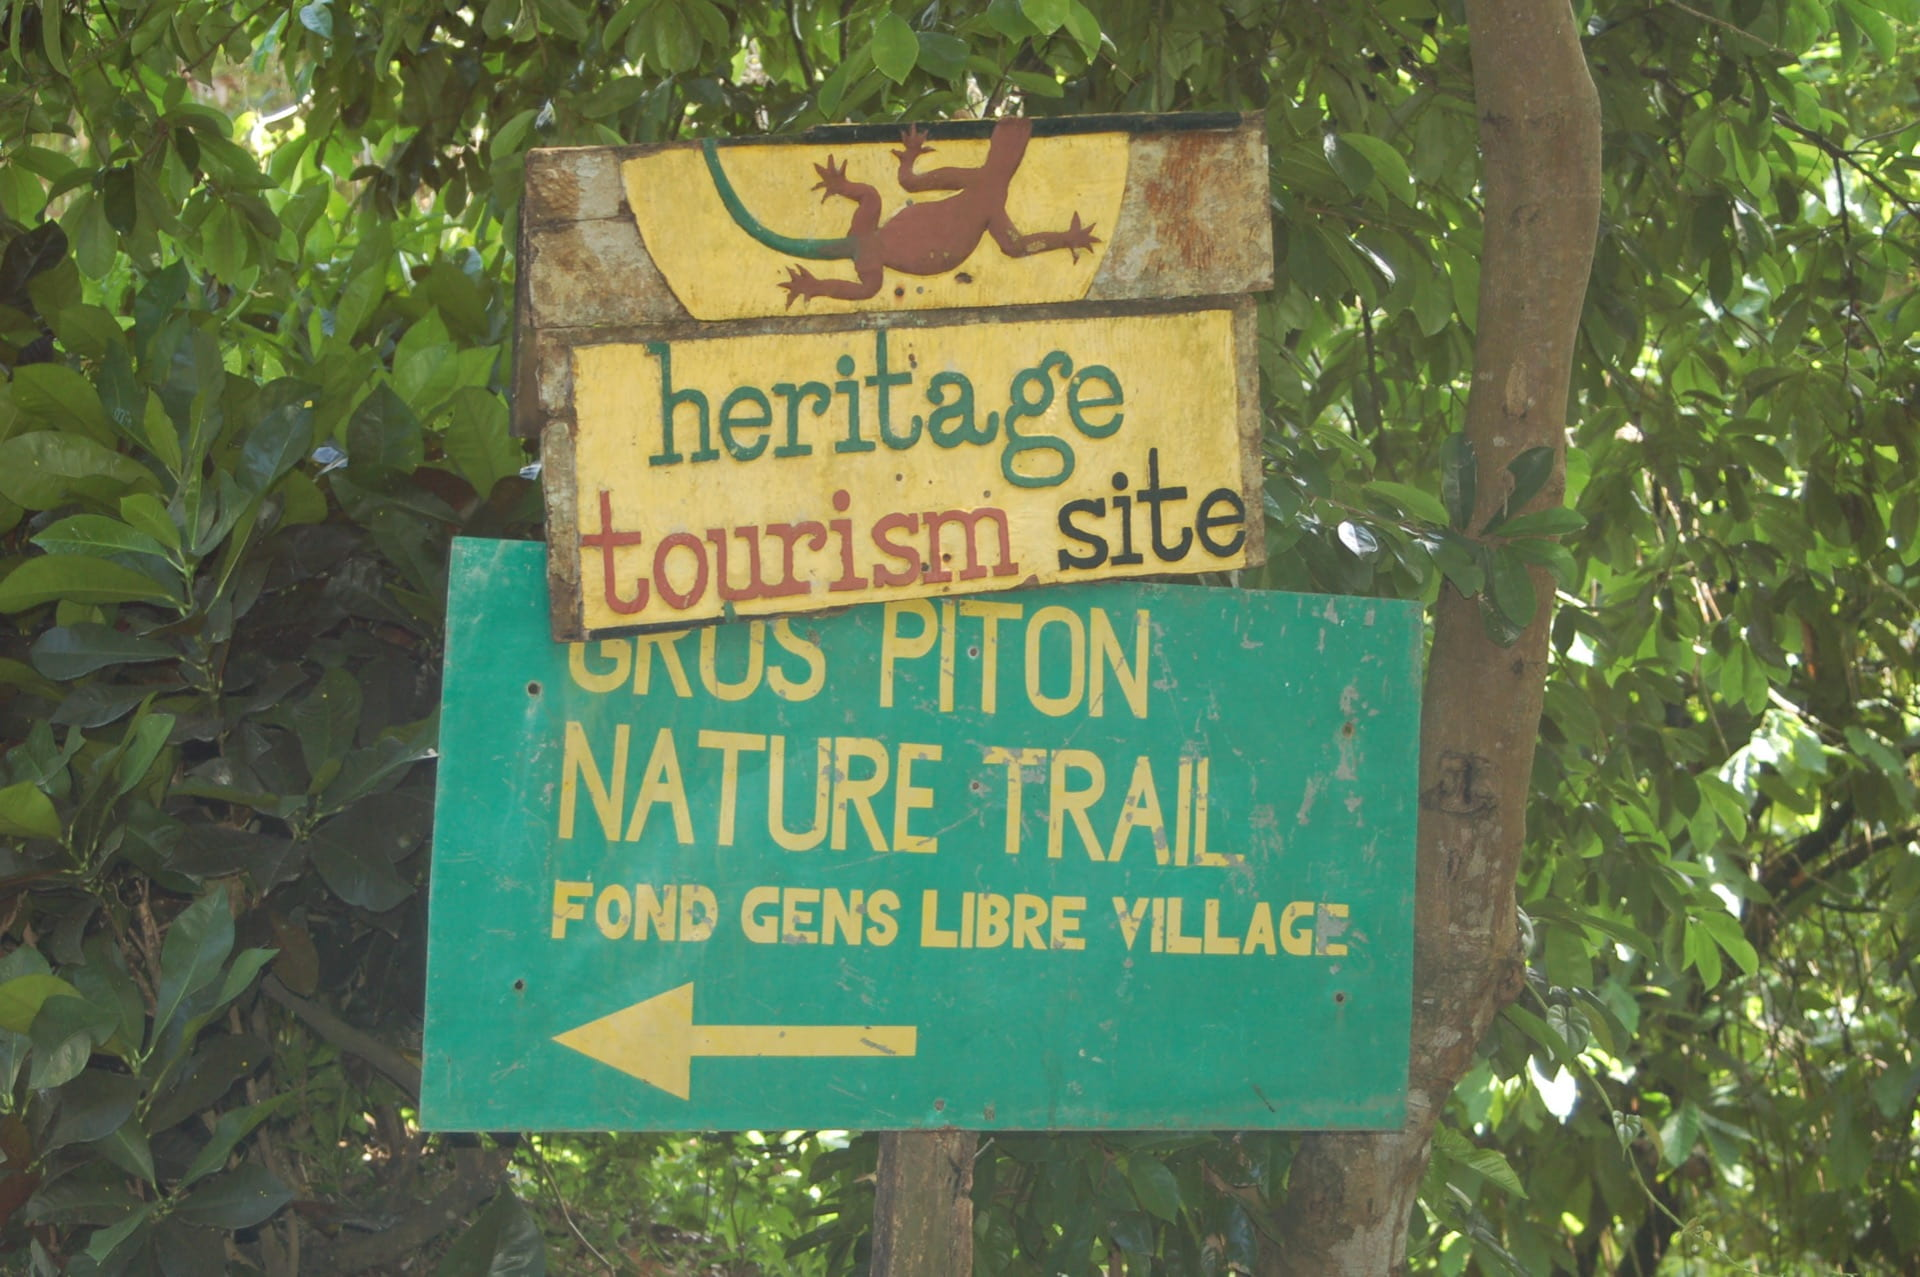 A sign in the jungles of St. Lucia, pointing to the village of Fond Gens Libre